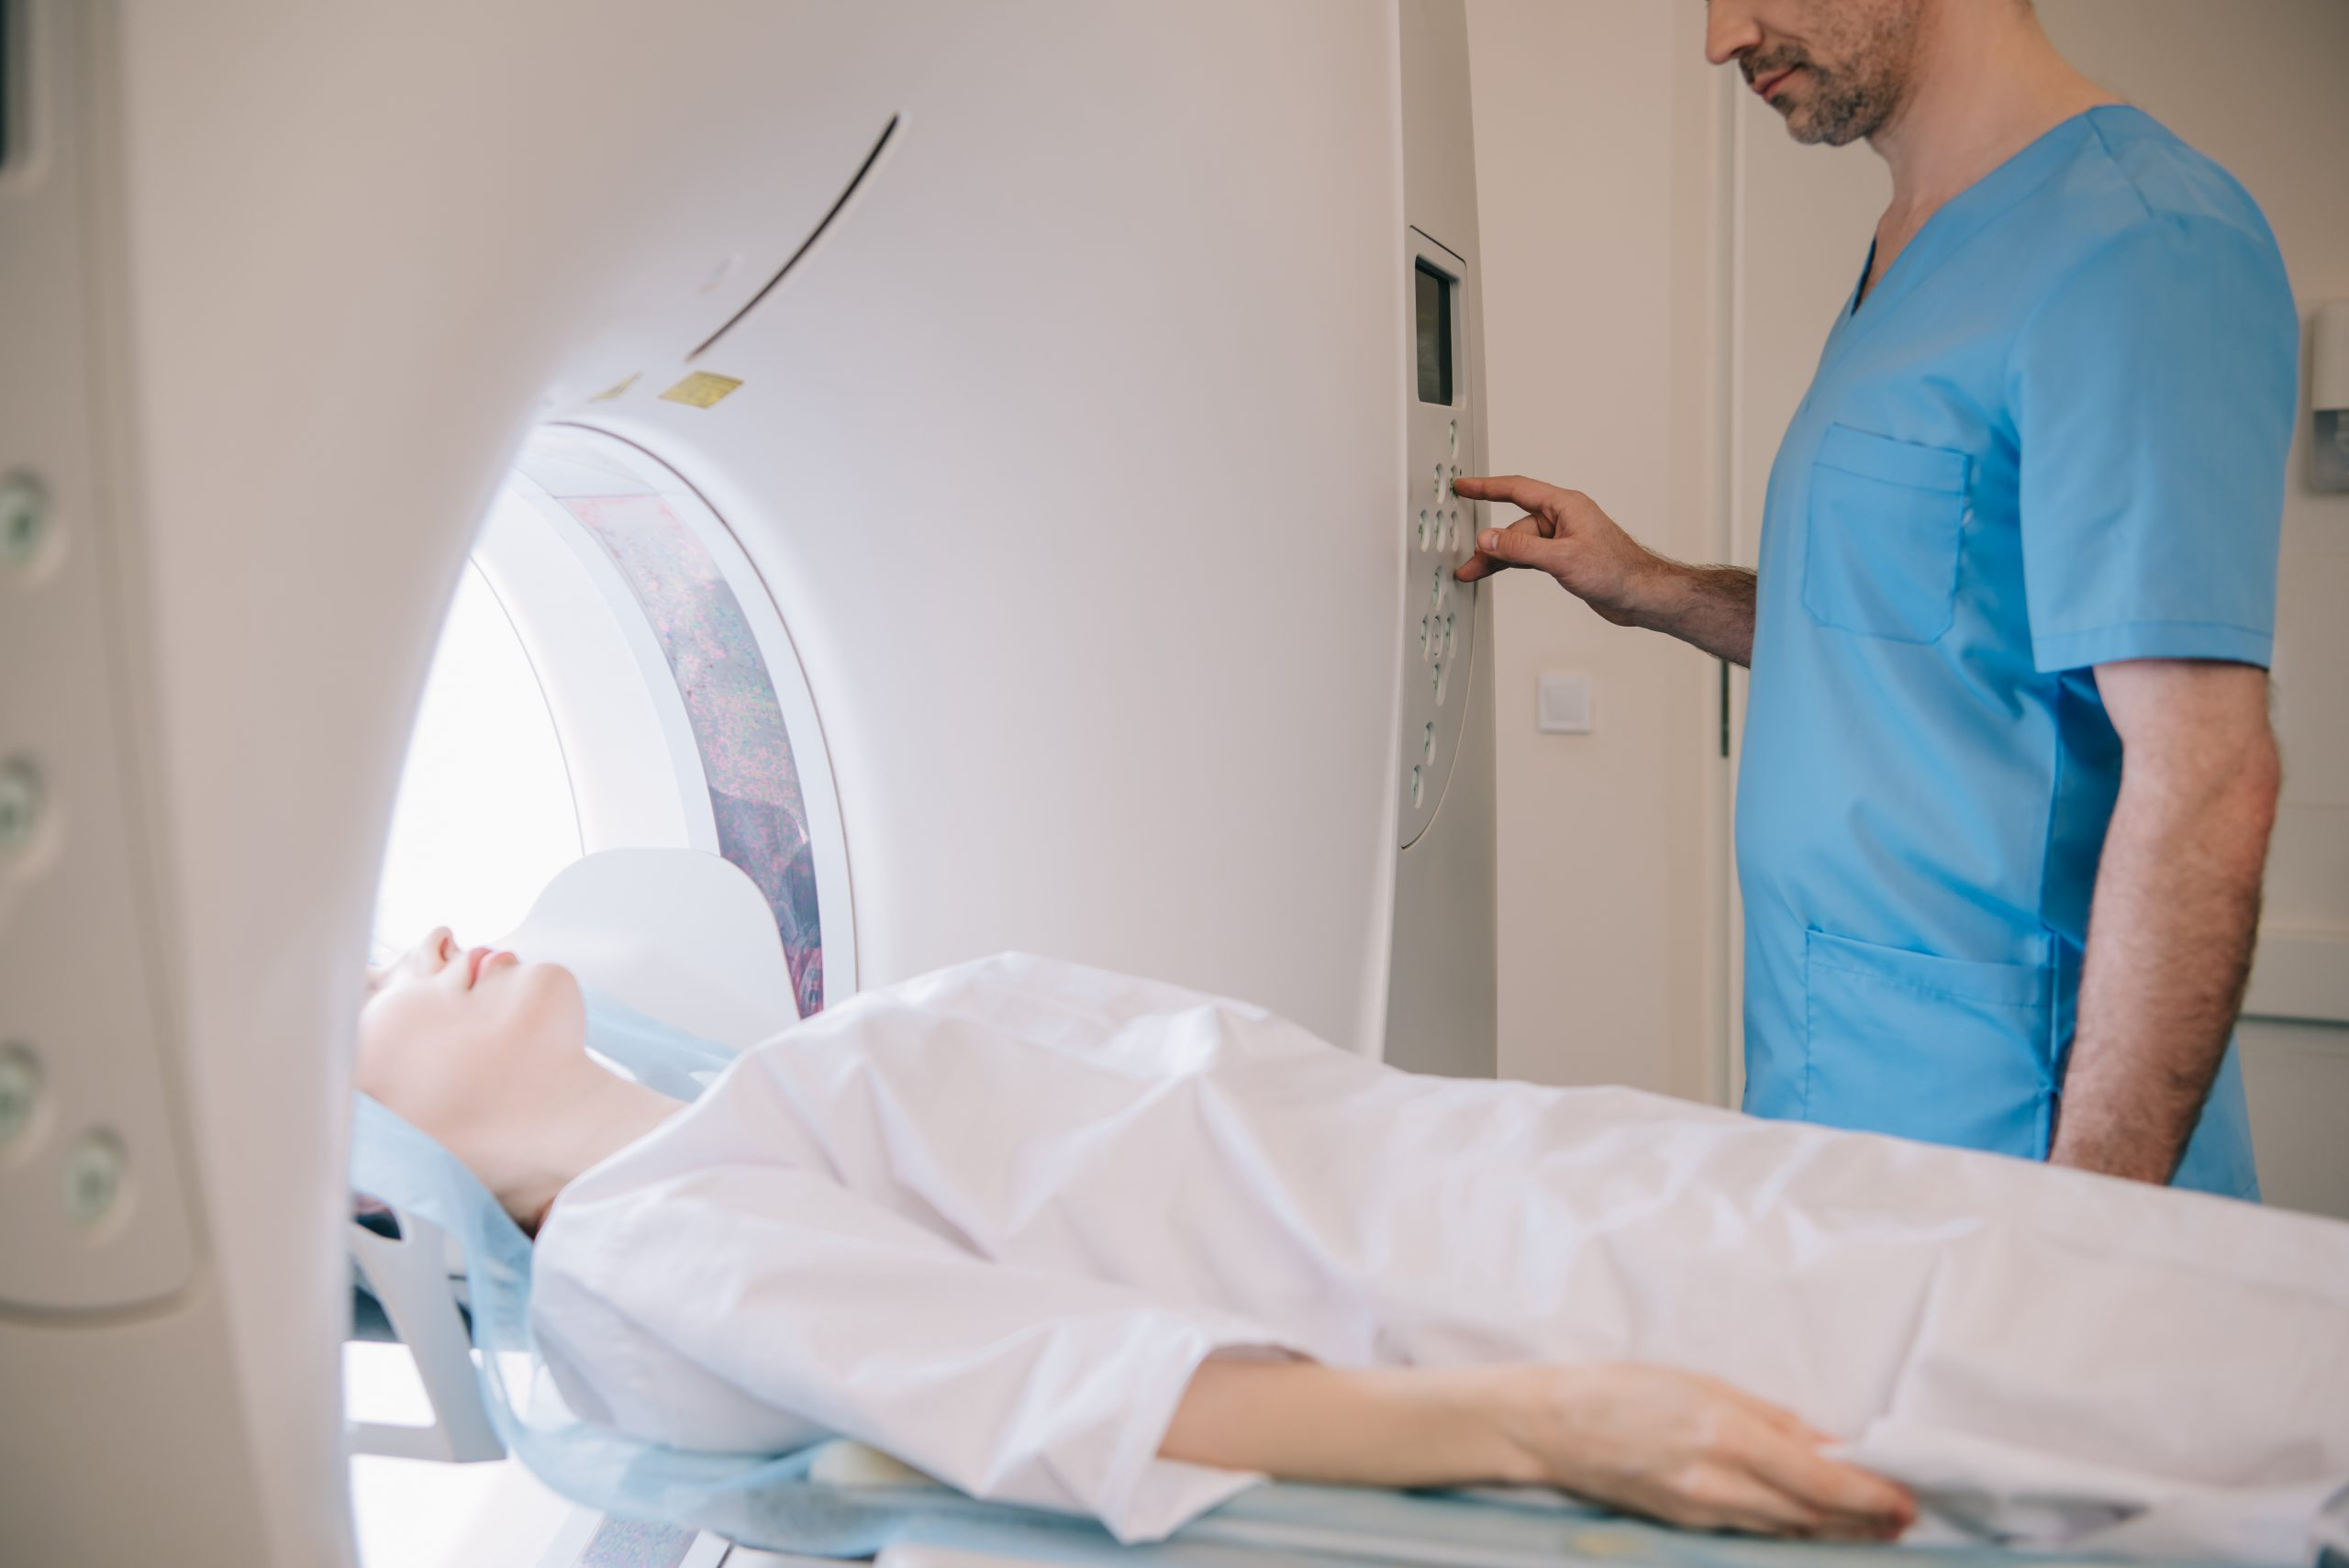 Kidney mri or ct scan